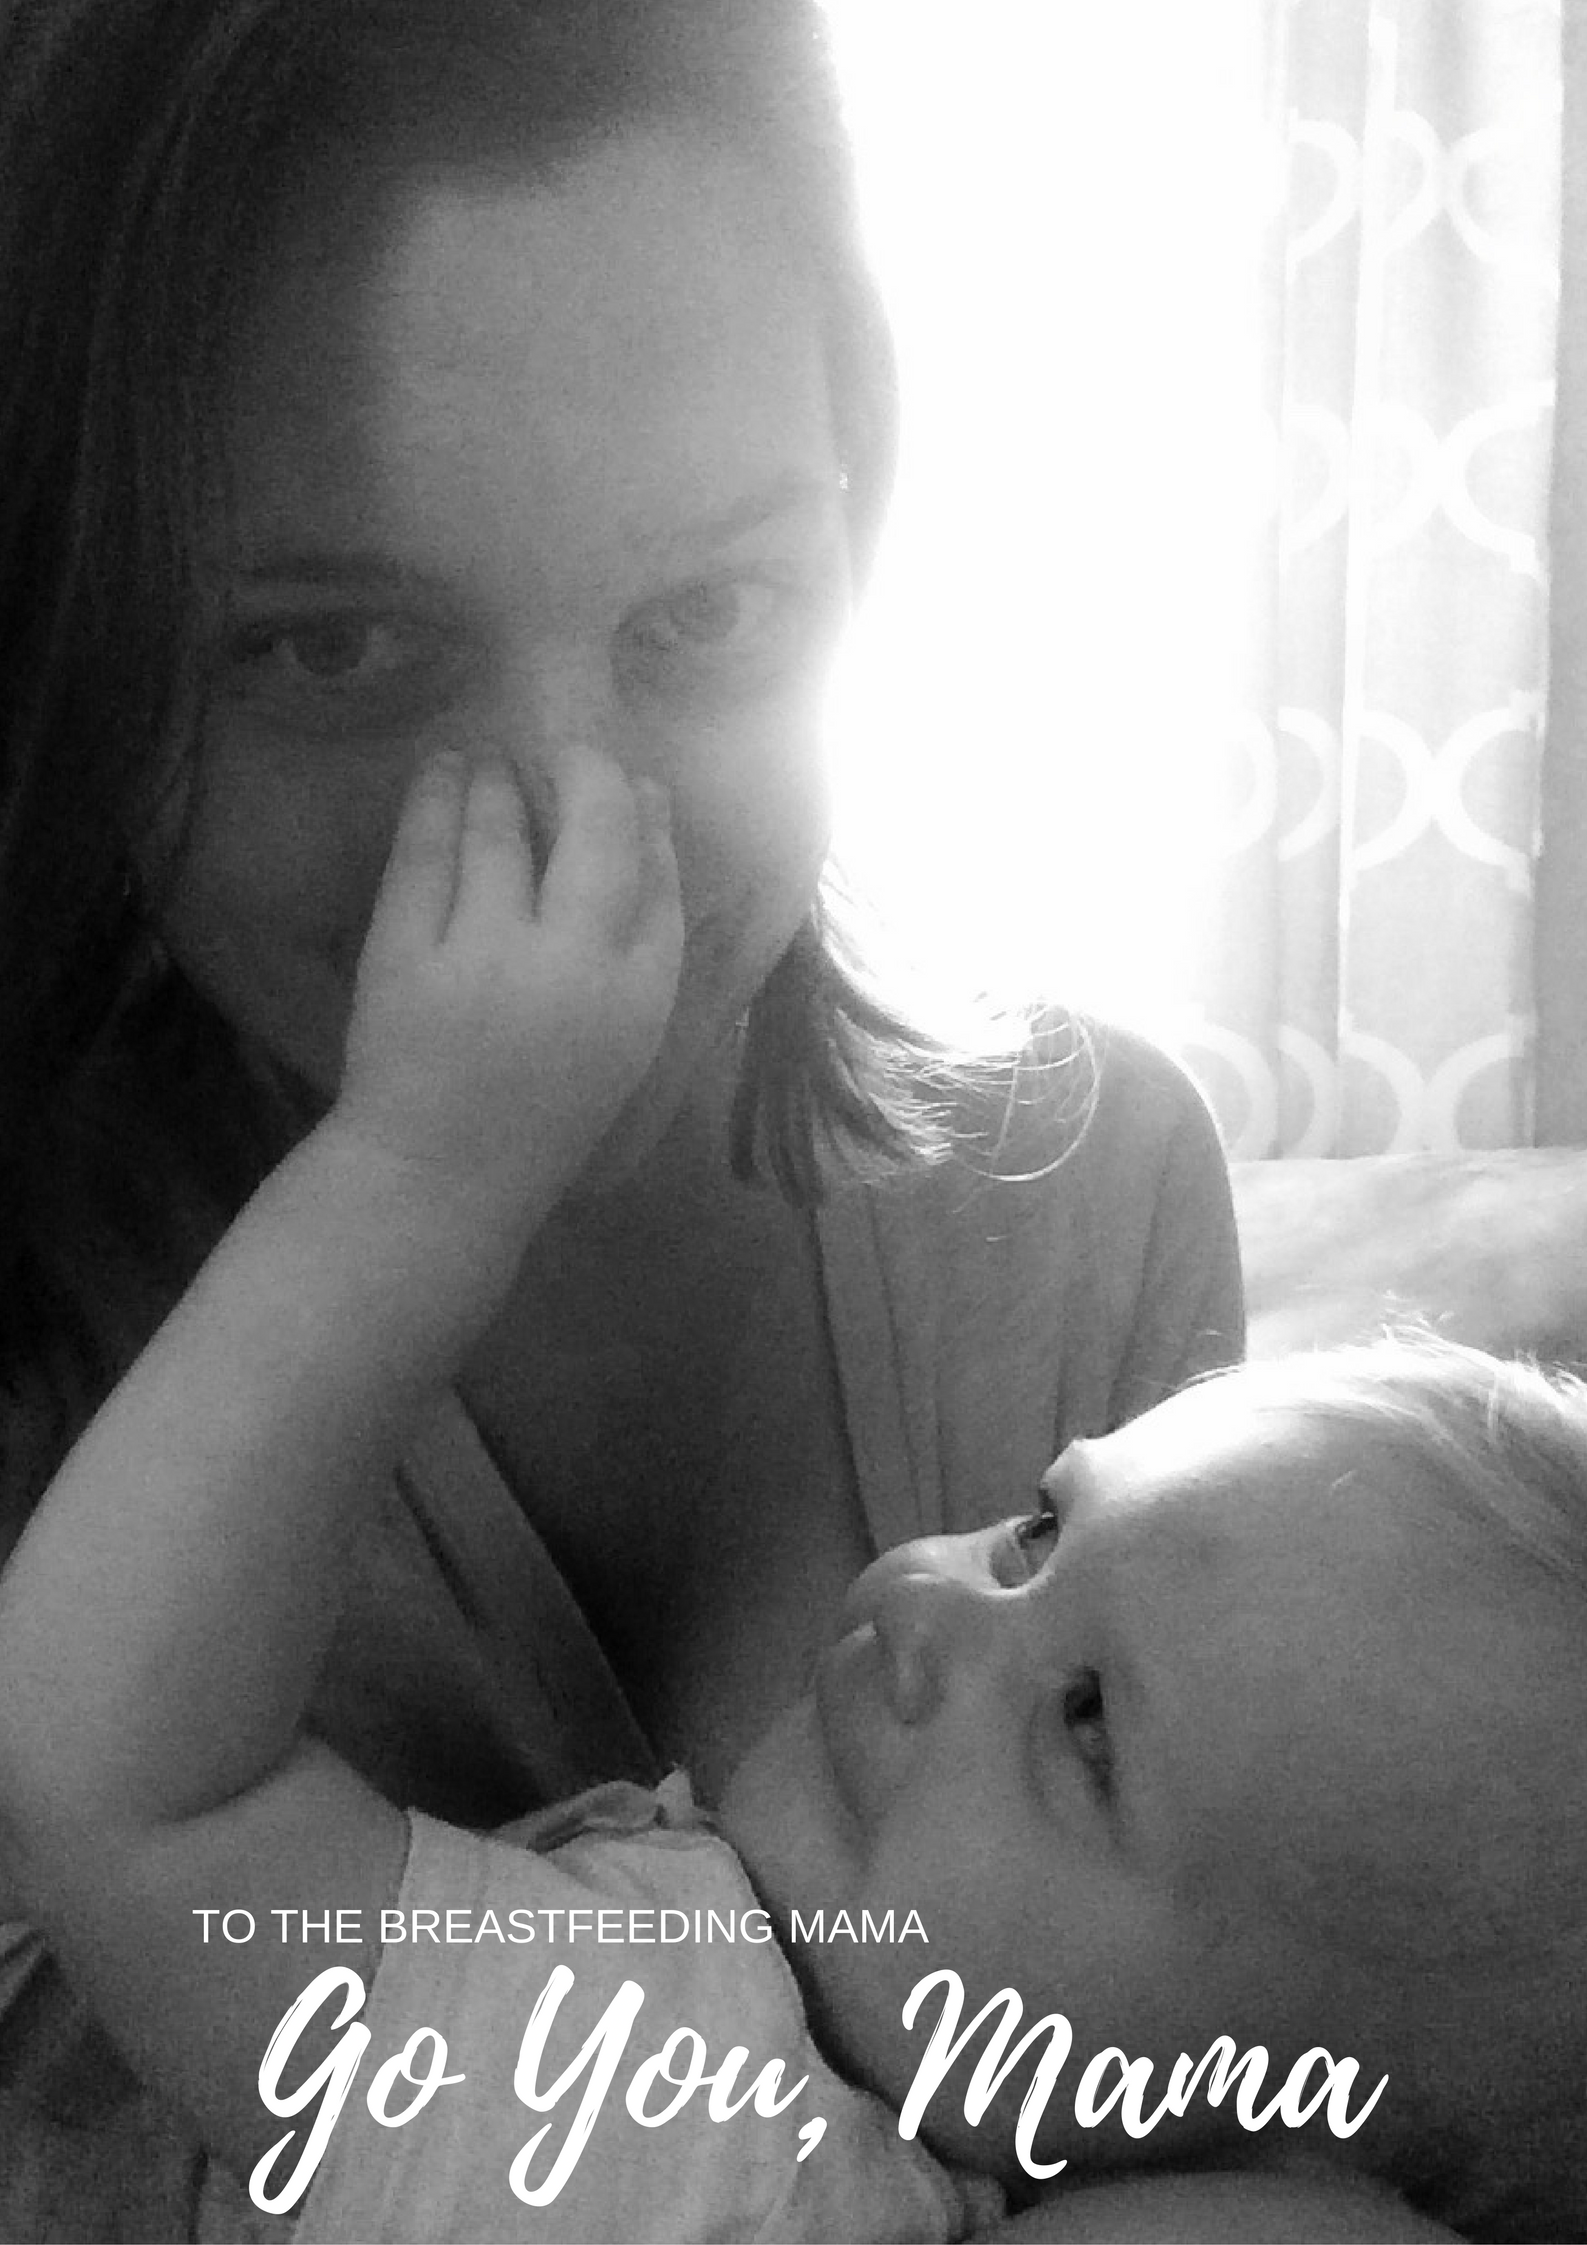 A Note to the Breastfeeding Mama